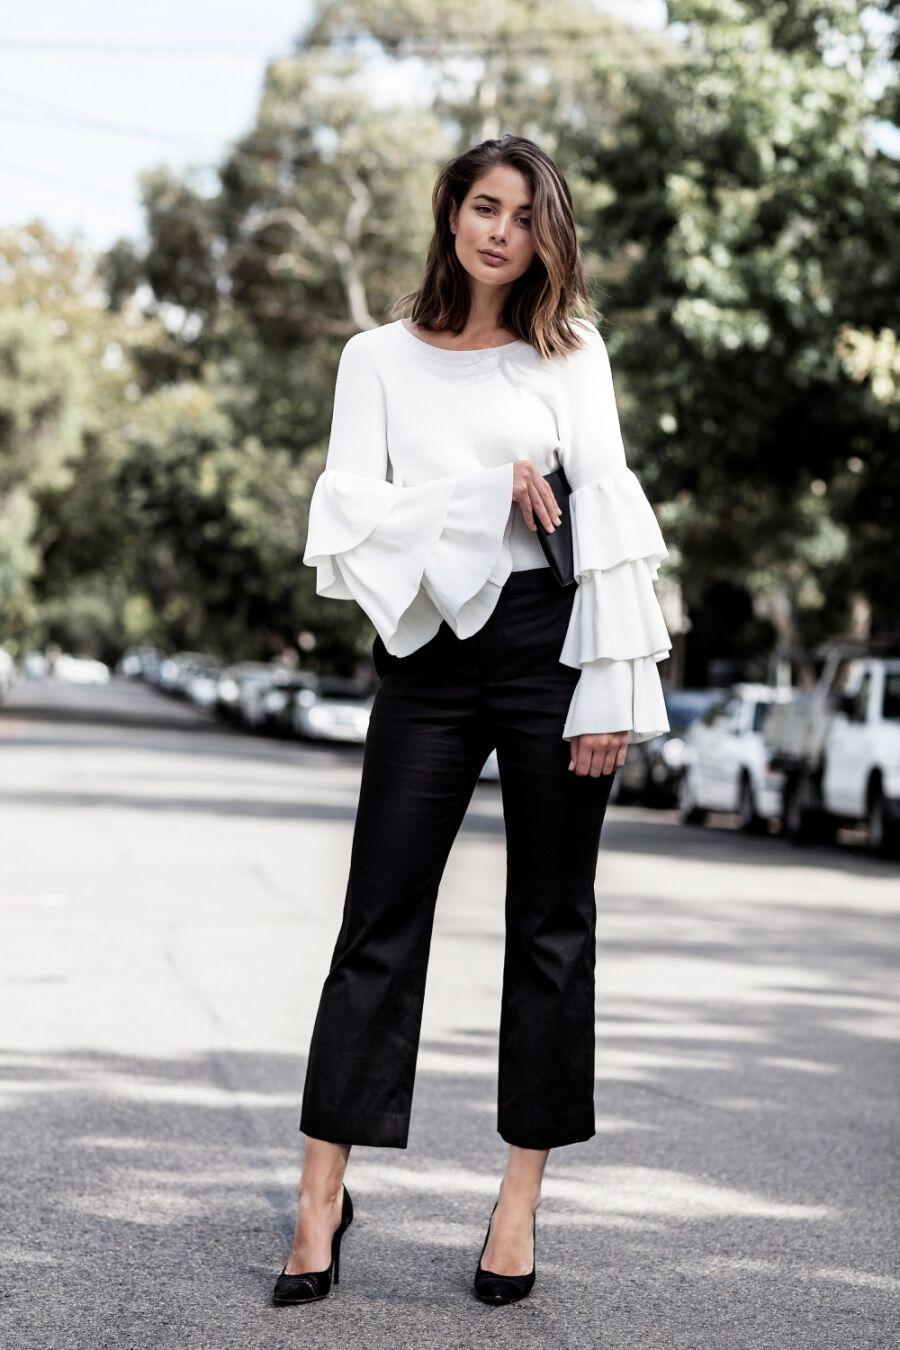 12 perfect ways to wear bell sleeve tops that will update your wardrobe 4 - 12 perfect ways to wear bell sleeve tops that will update your wardrobe